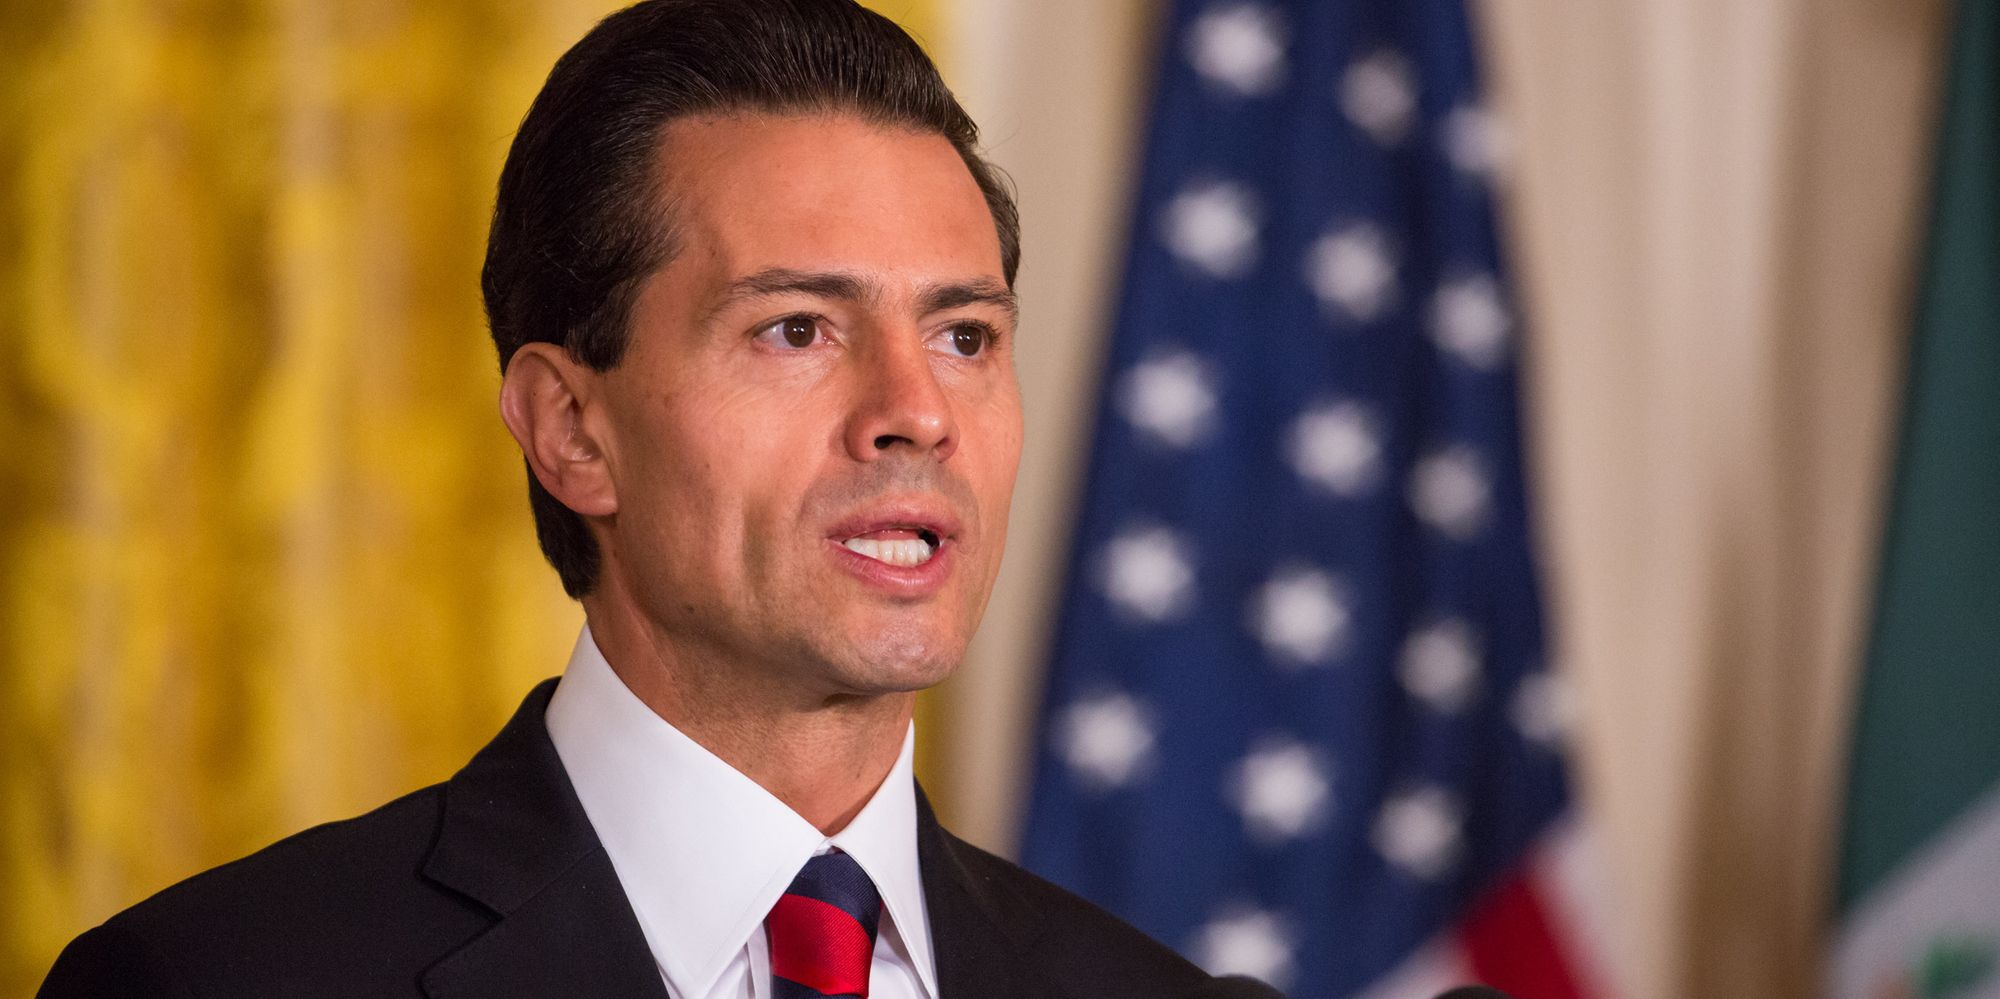 Mexican President Cancels Meeting With Donald Trump After Border Wall Order